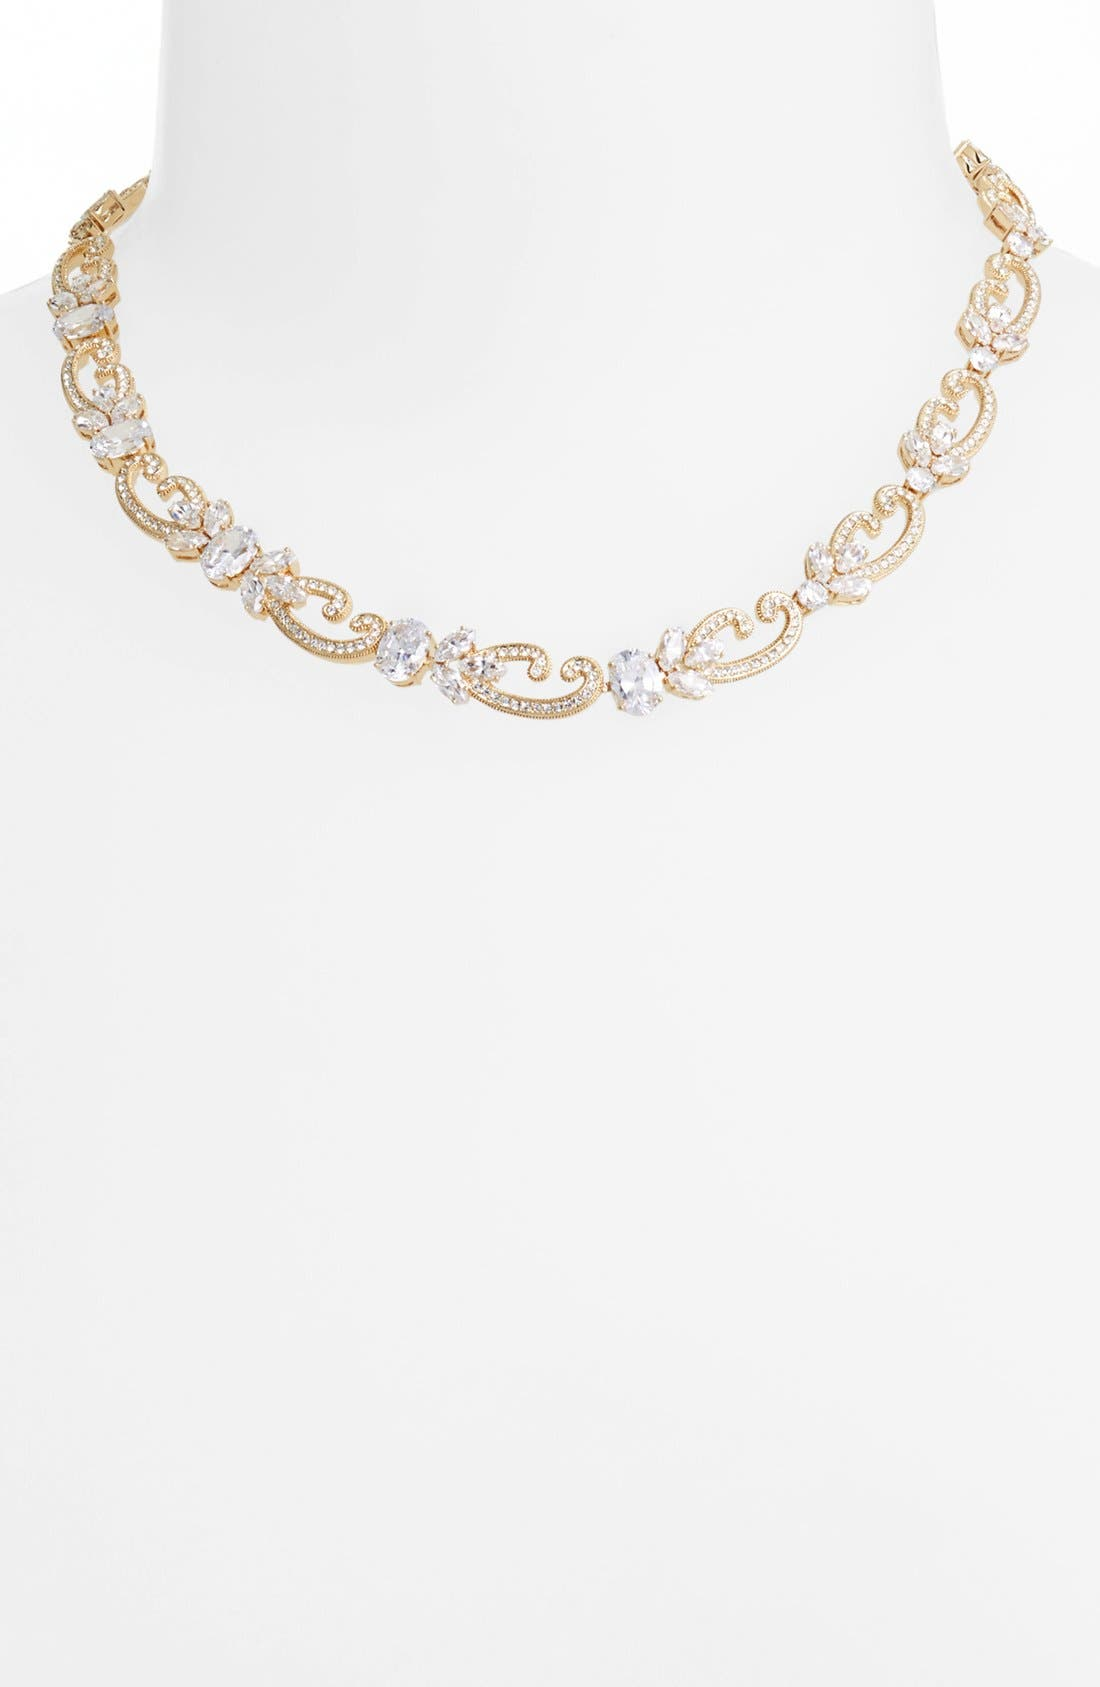 Main Image - Nadri Crystal Scroll Collar Necklace